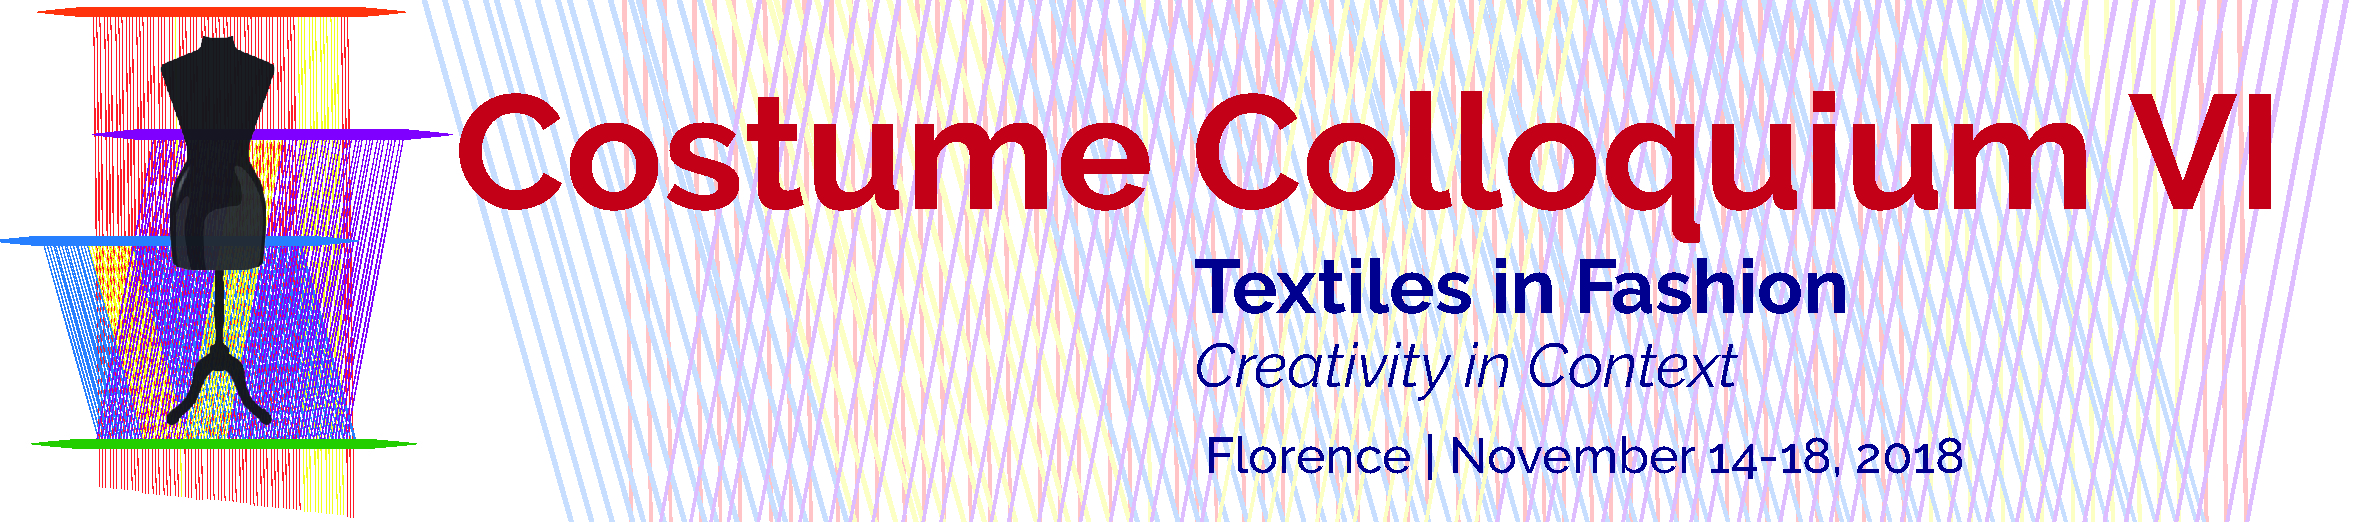 Call for papers fashion 2018 59